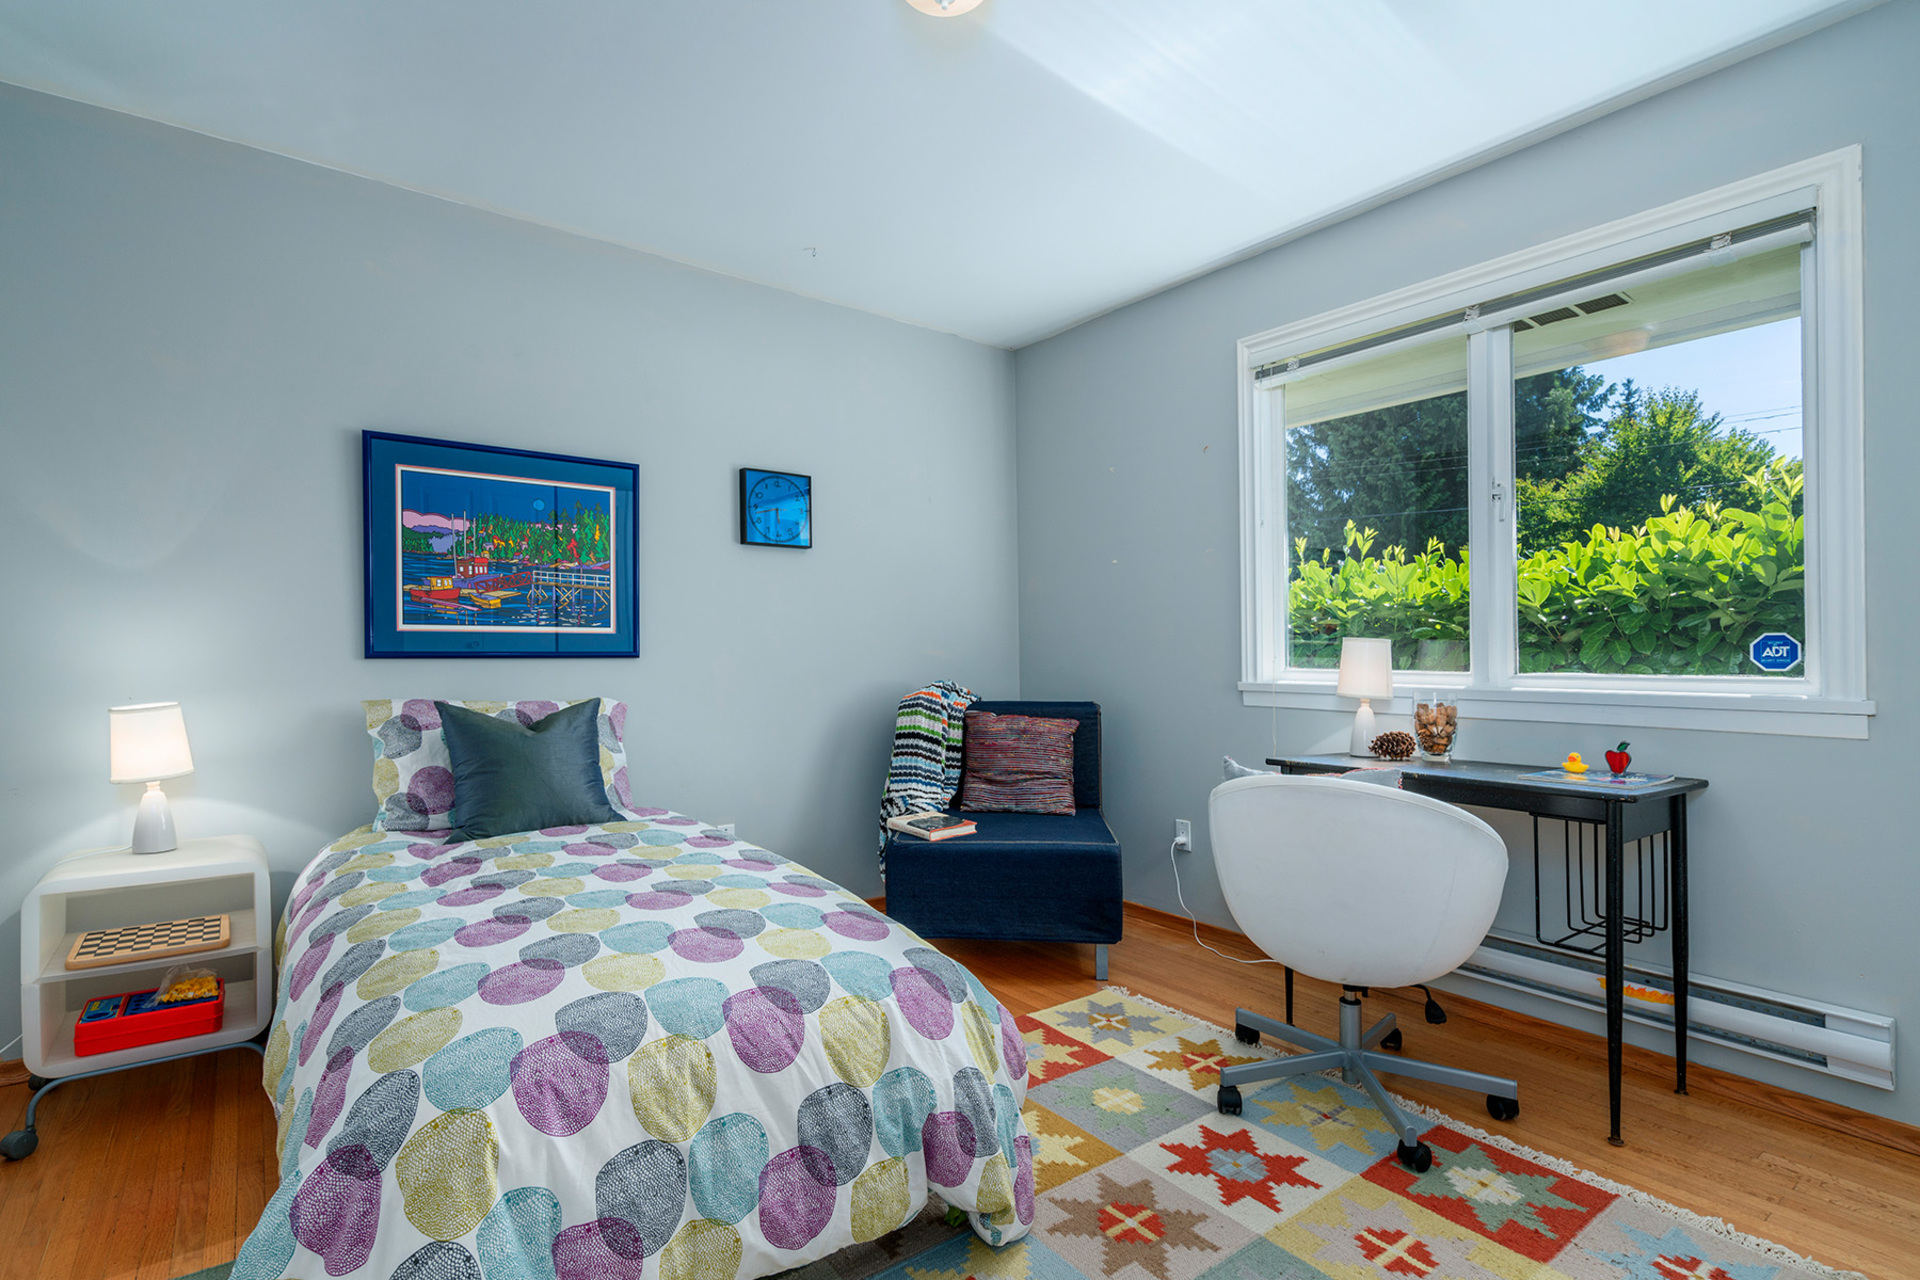 bdrm at 368 St. James, British Properties, West Vancouver